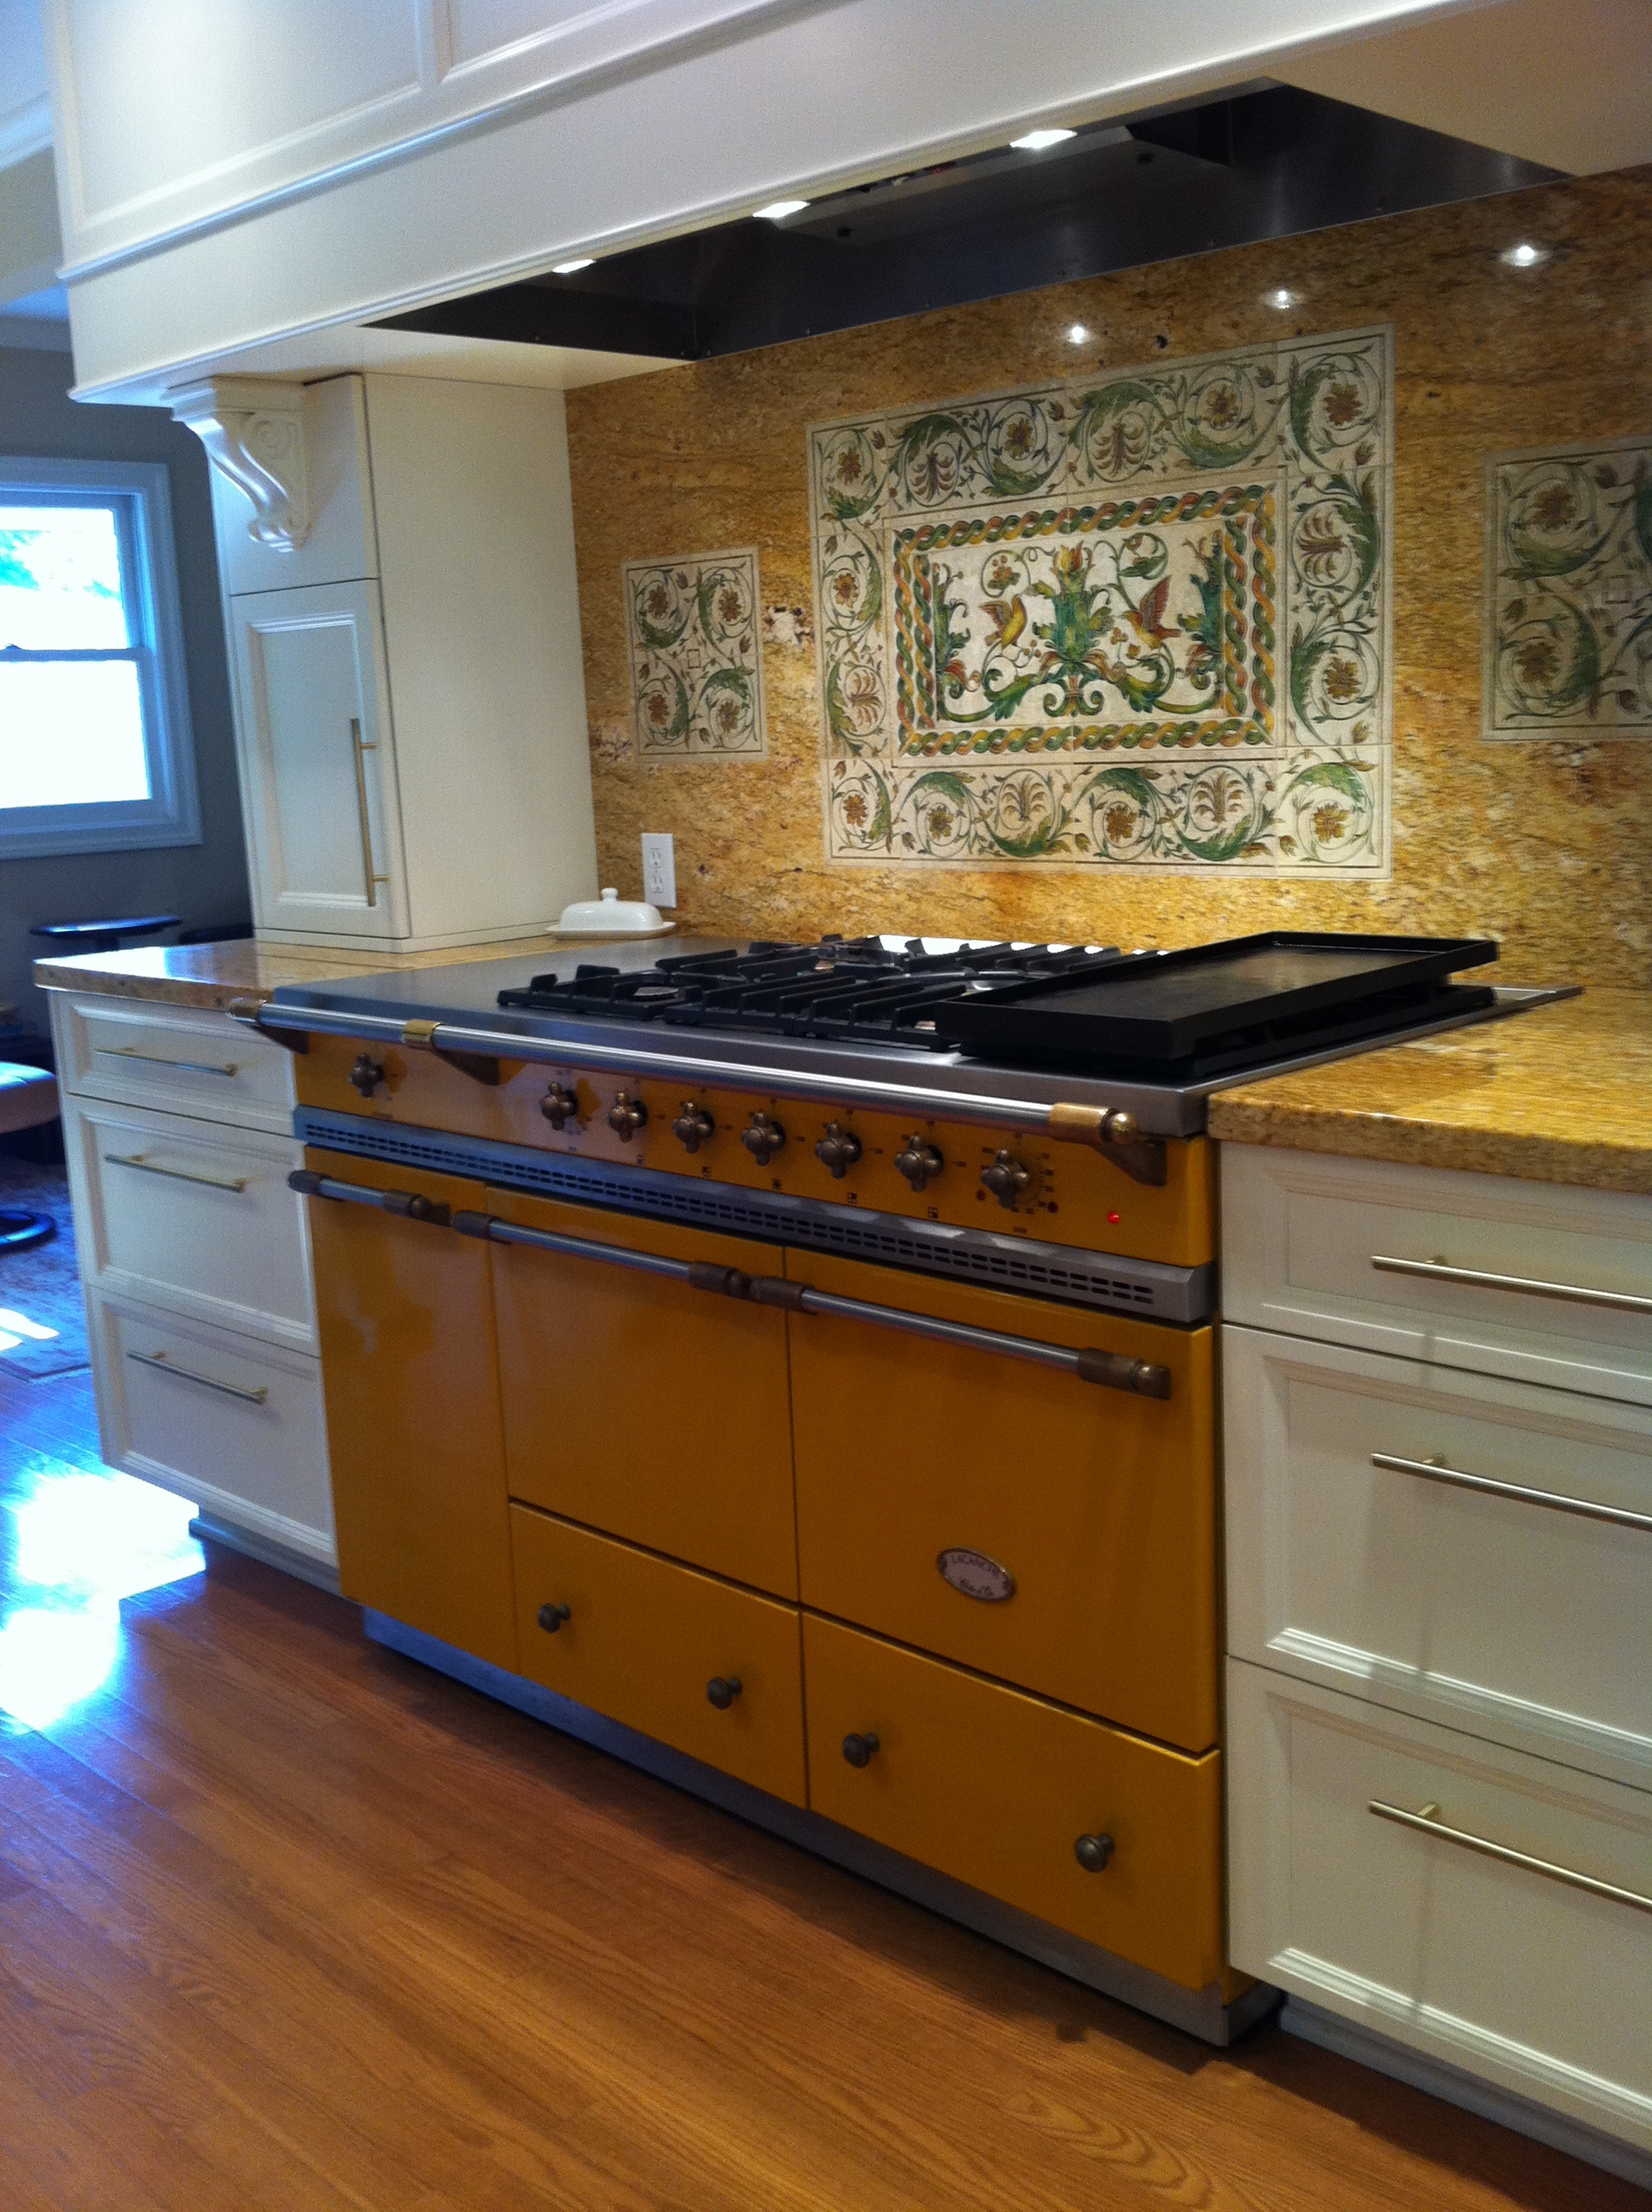 Kitchen Island With Range Cooker Island And Wall Spacers - Lacanche Usa